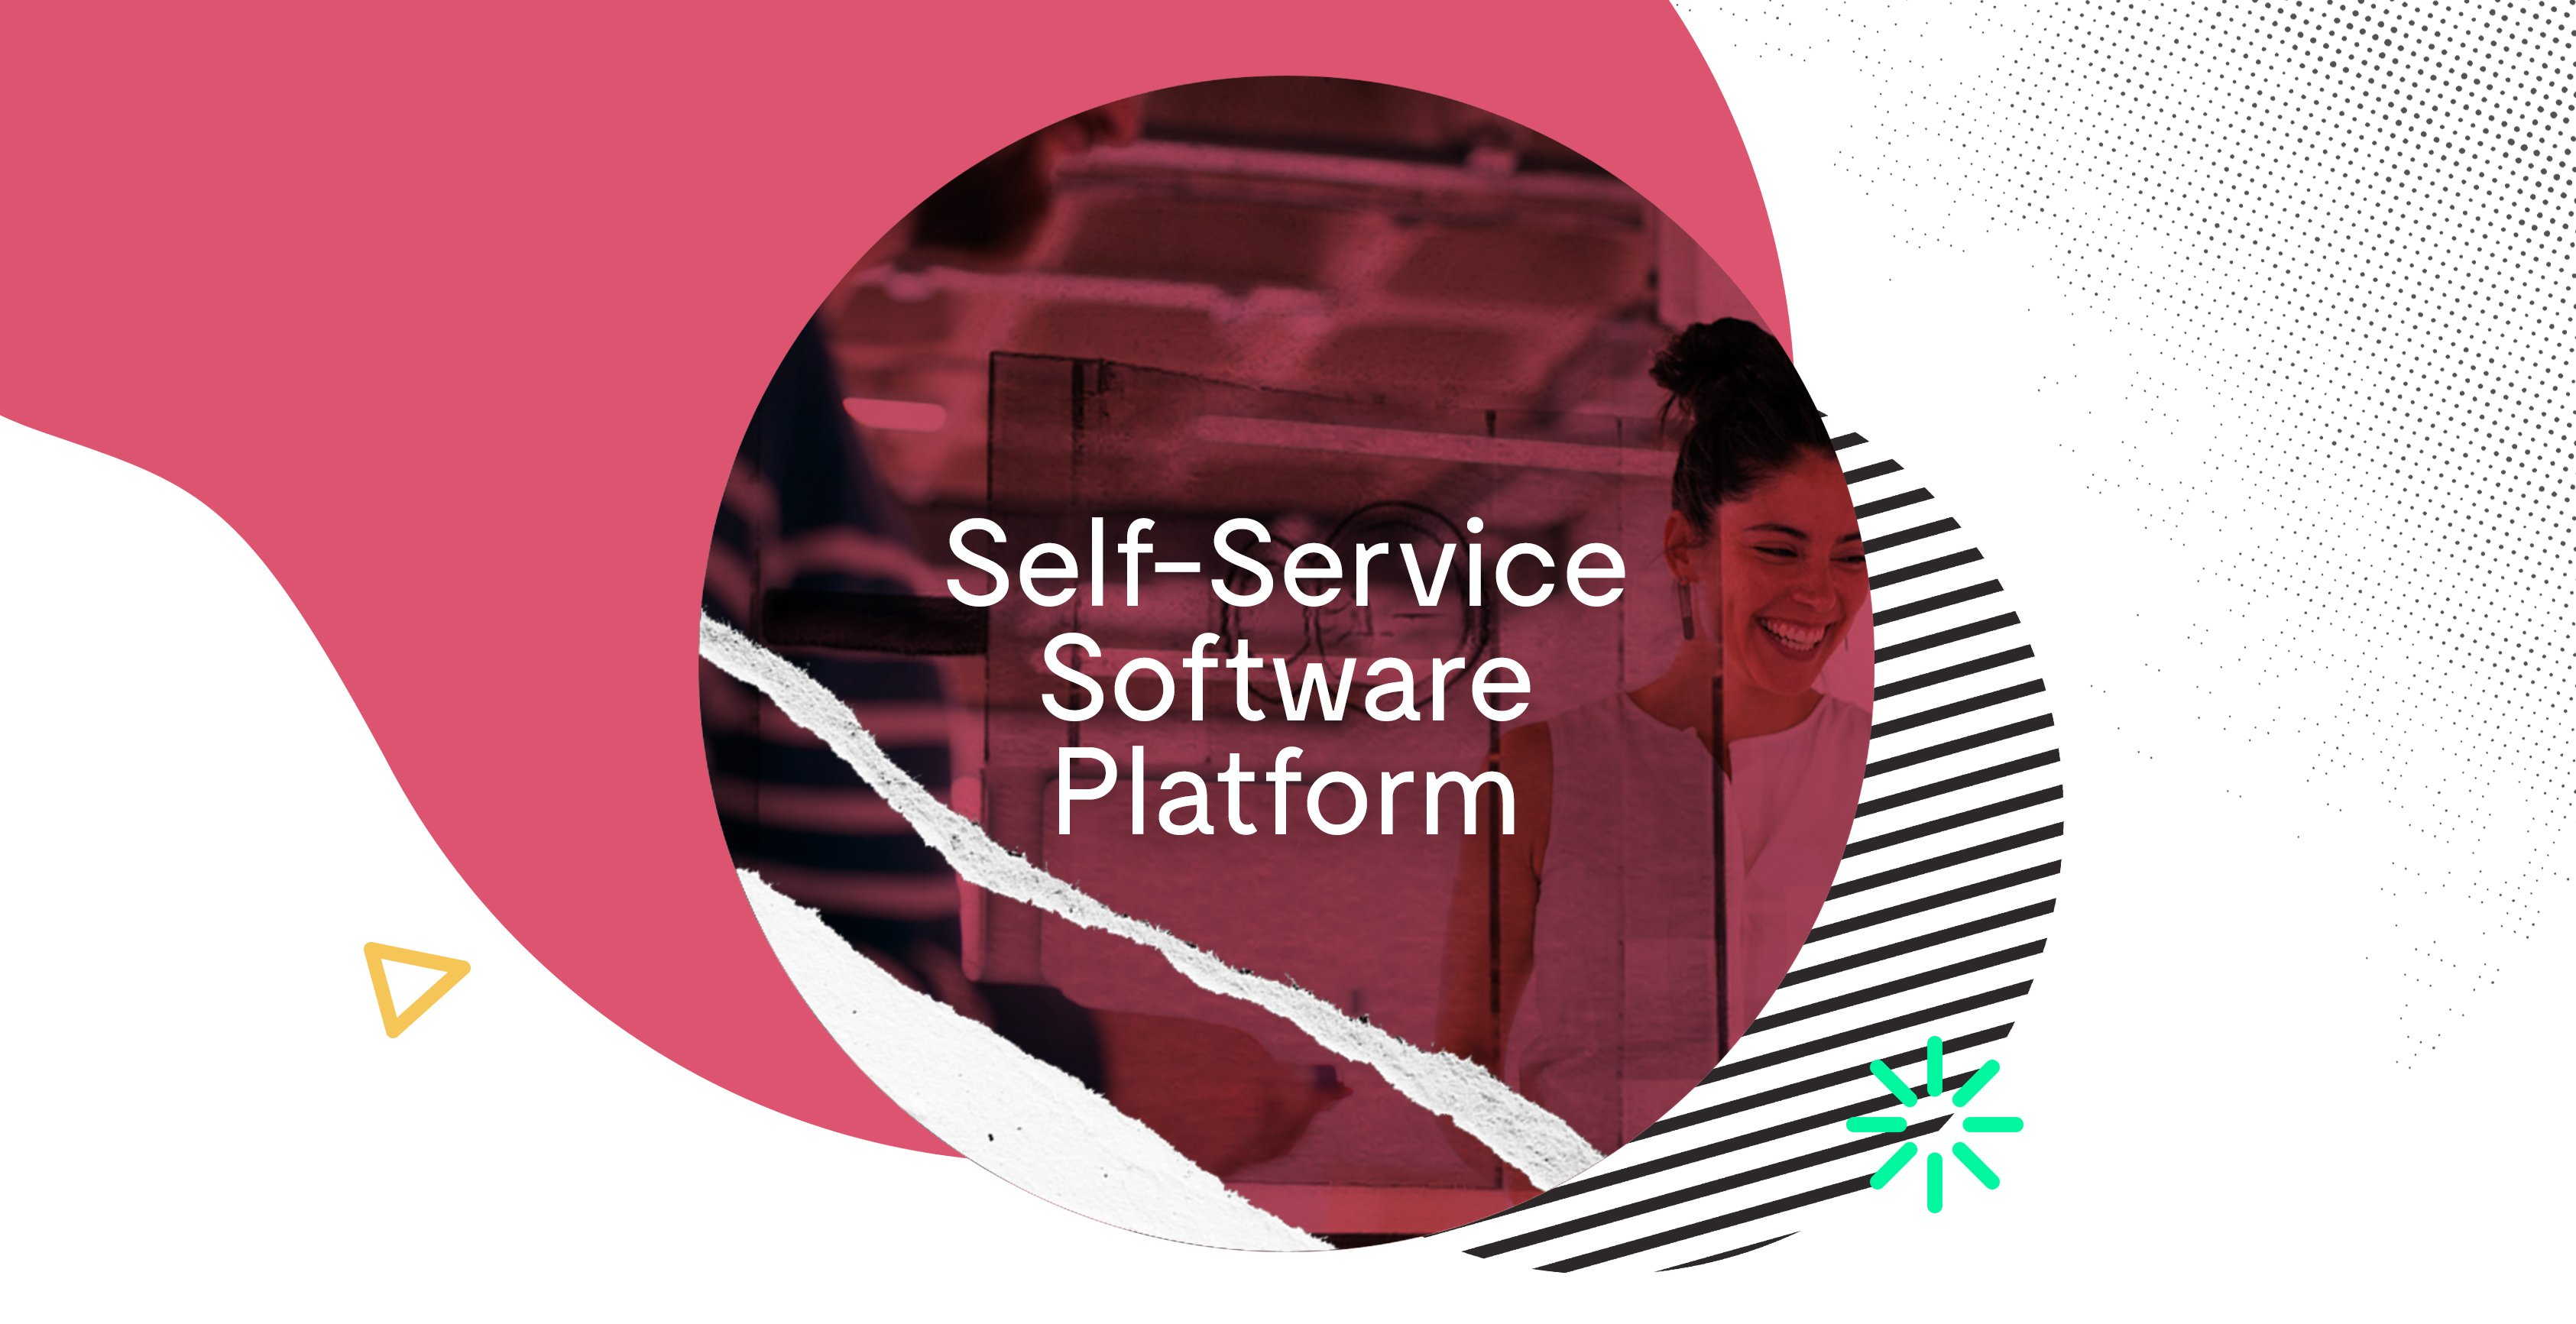 self-service software platform